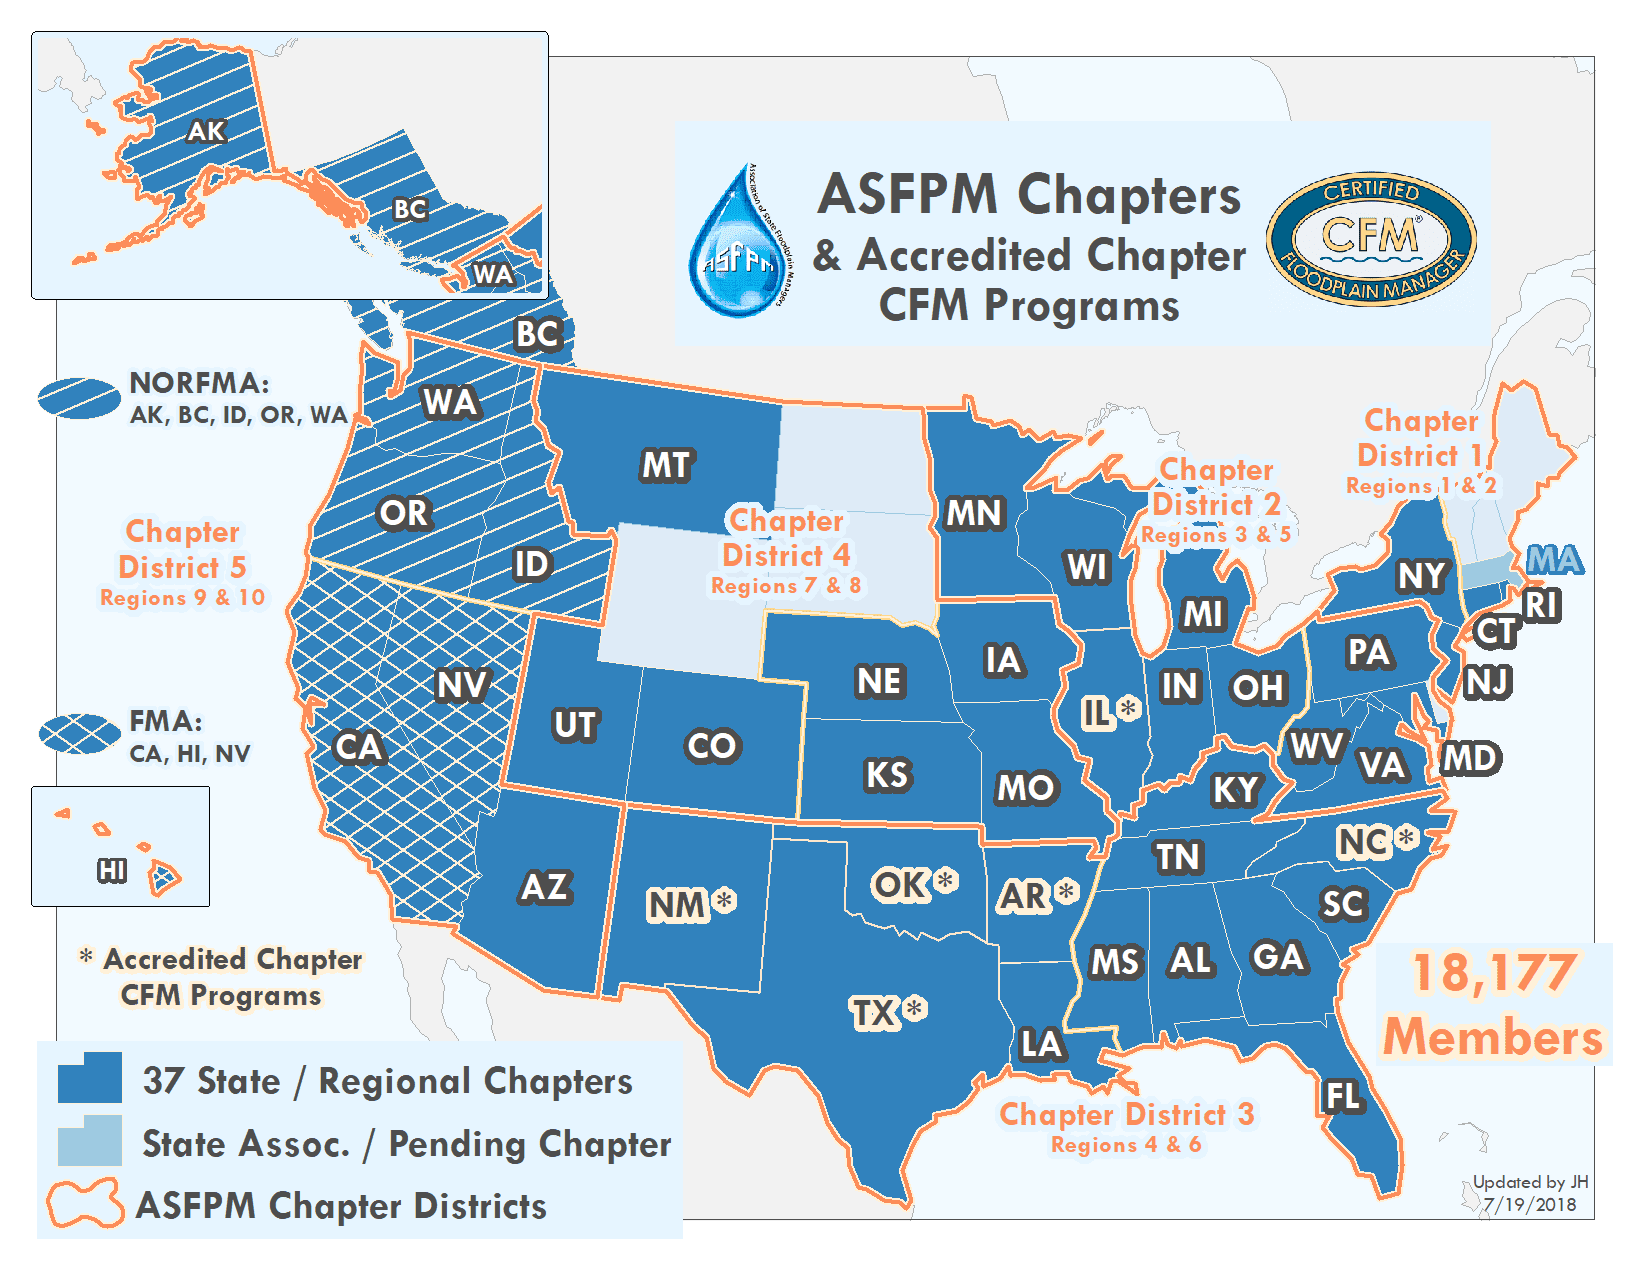 ASFPM Chapters & Accredited Chapter CFM Programs